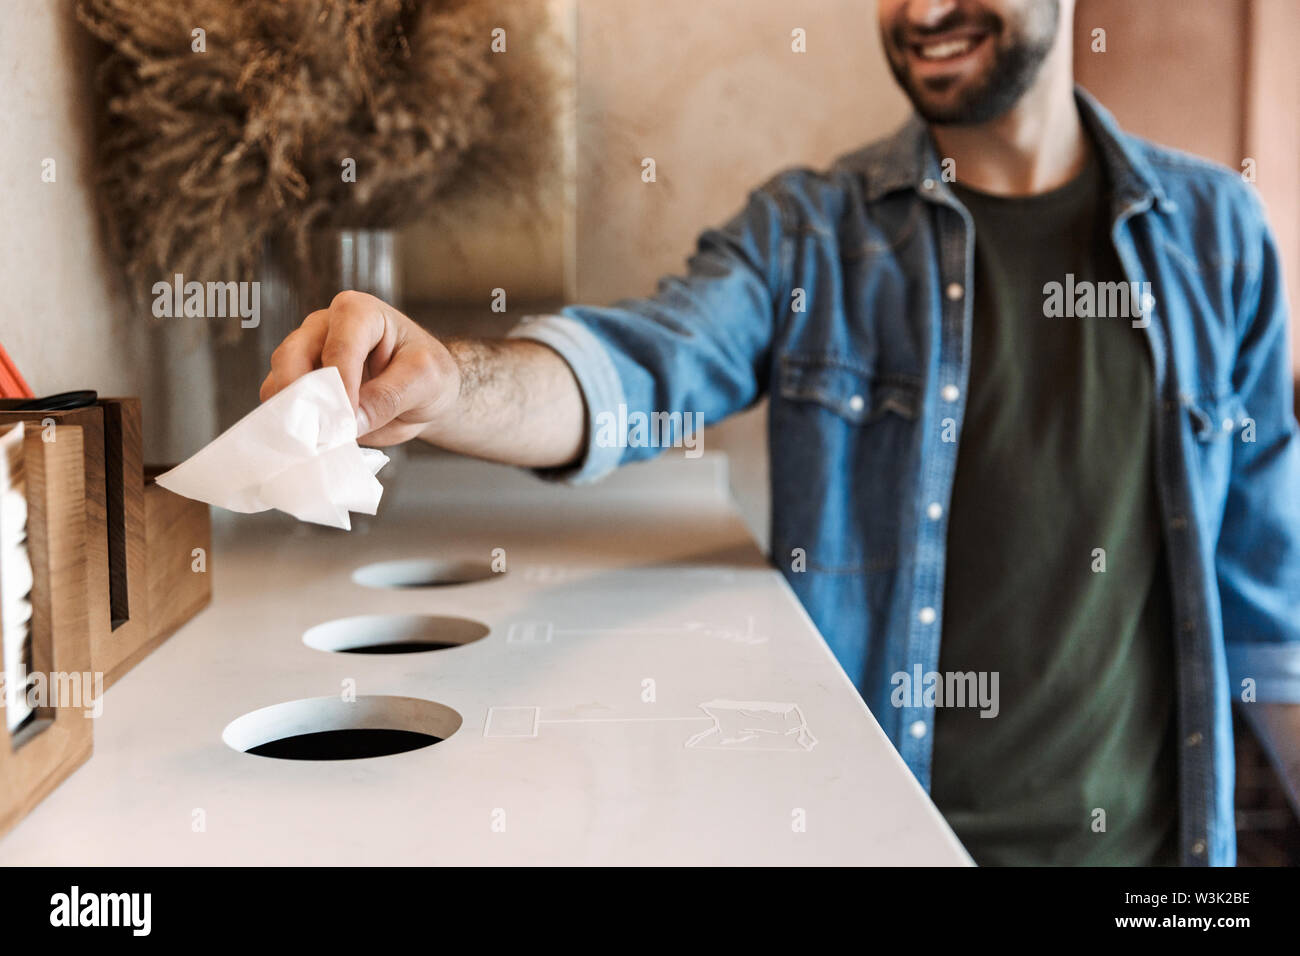 Image of caucasian cheerful man wearing denim shirt smiling and throwing paper garbage to separate collection bins for recycling in cafe indoors - Stock Image